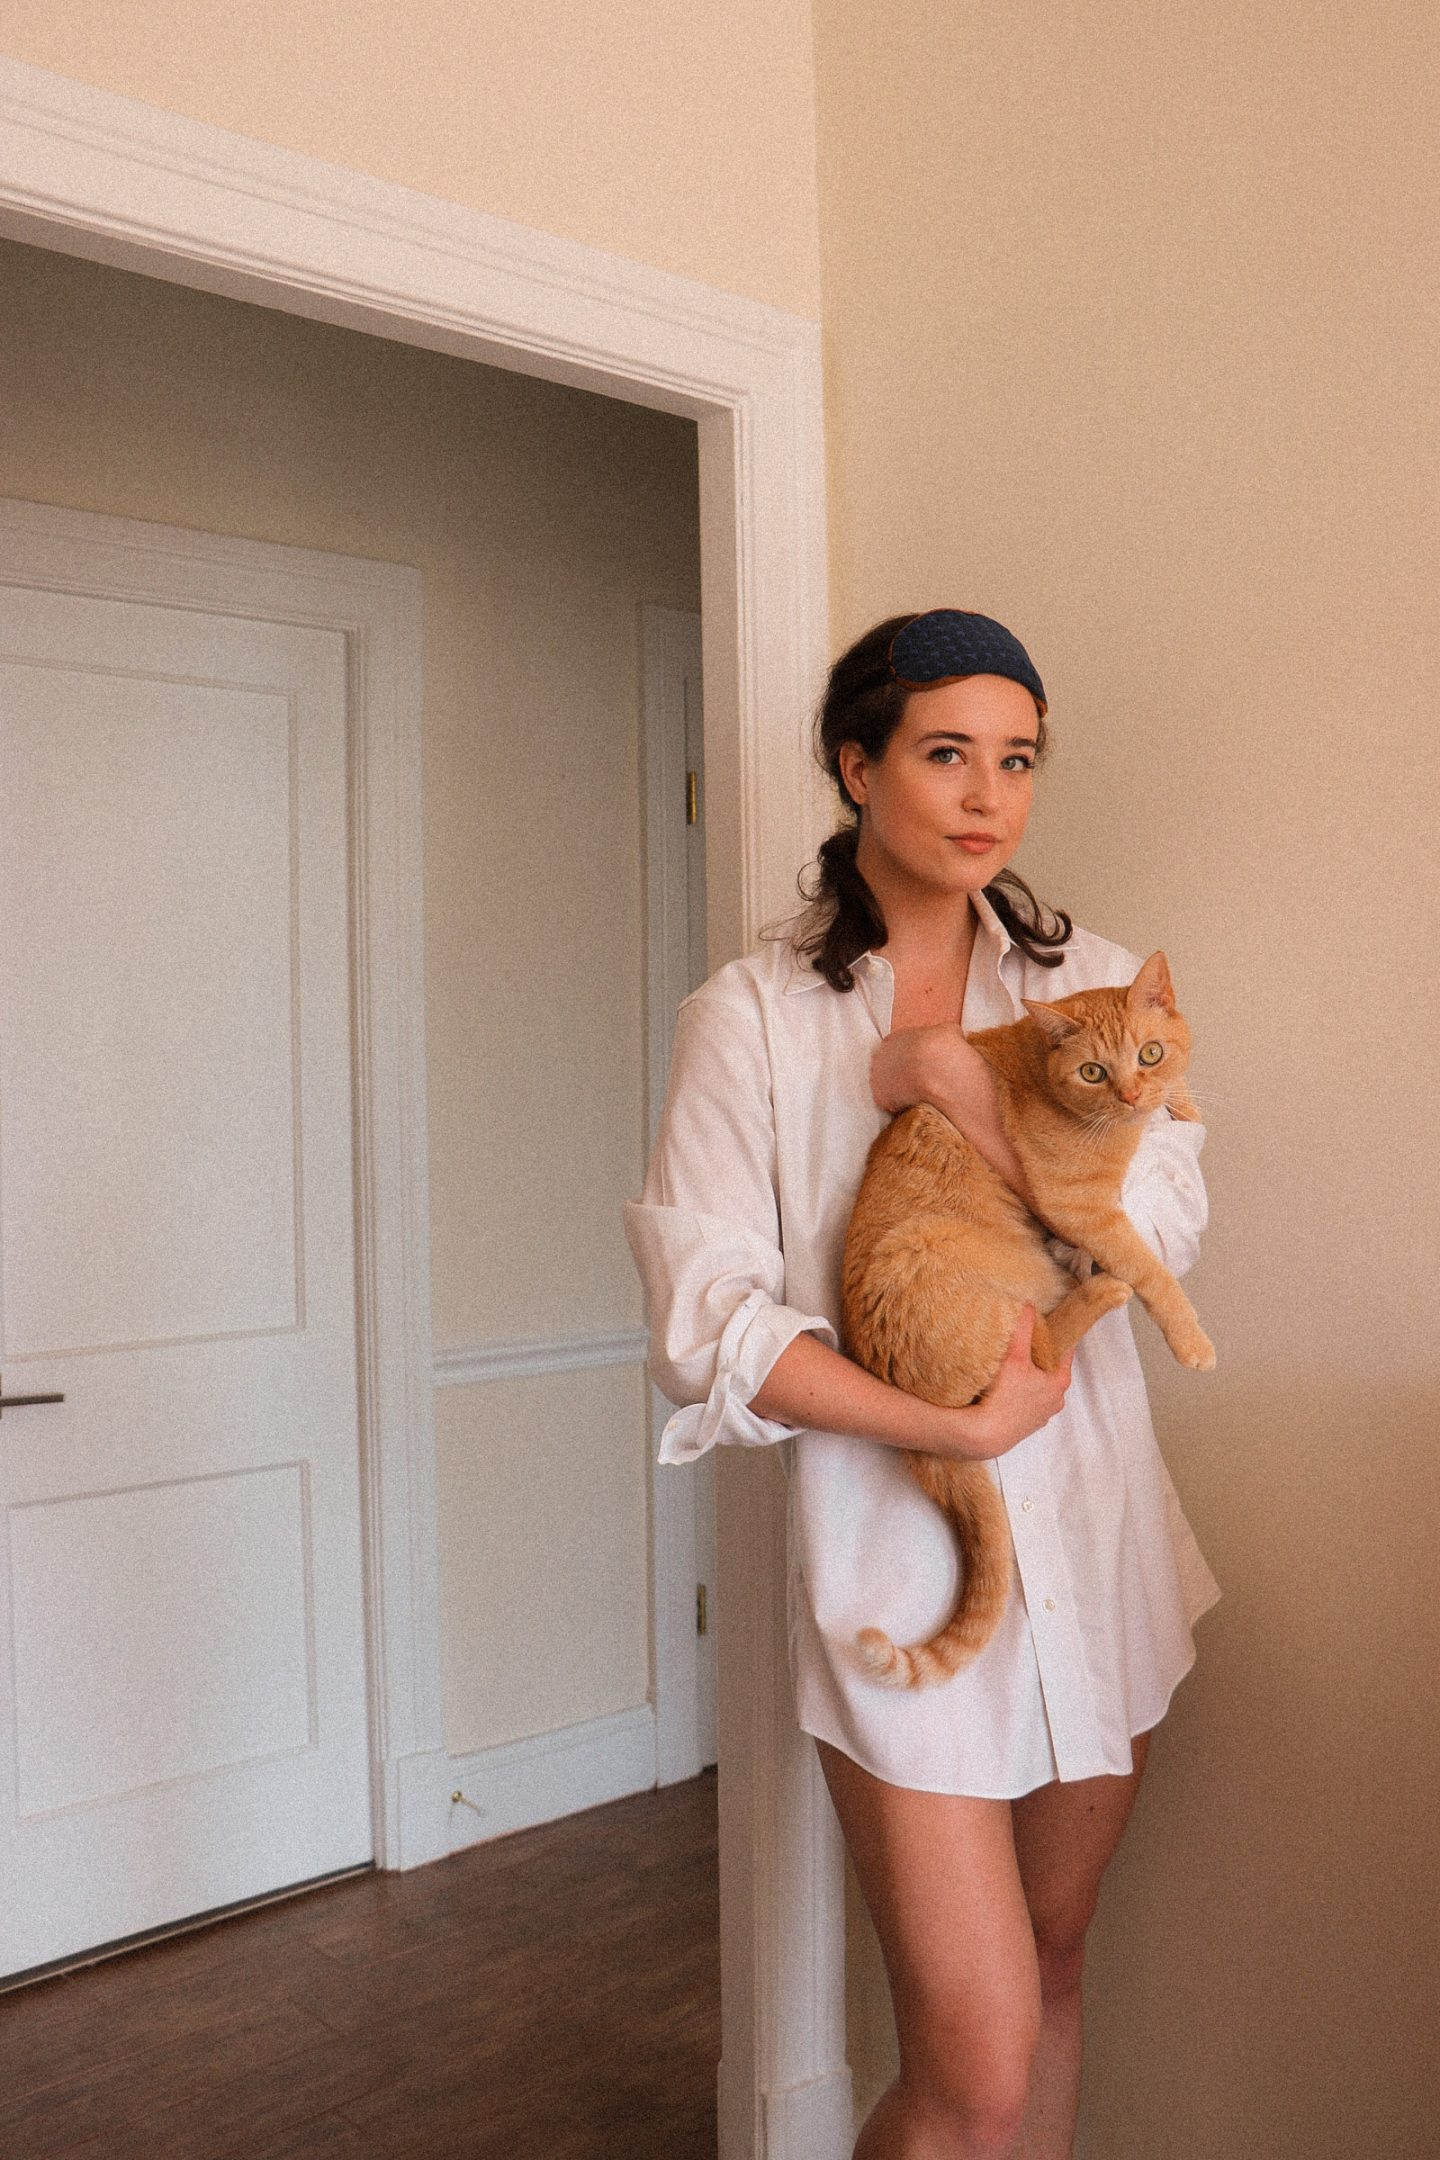 Staying at Home with Holly Golightly- Recreating Breakfast at Tiffany's